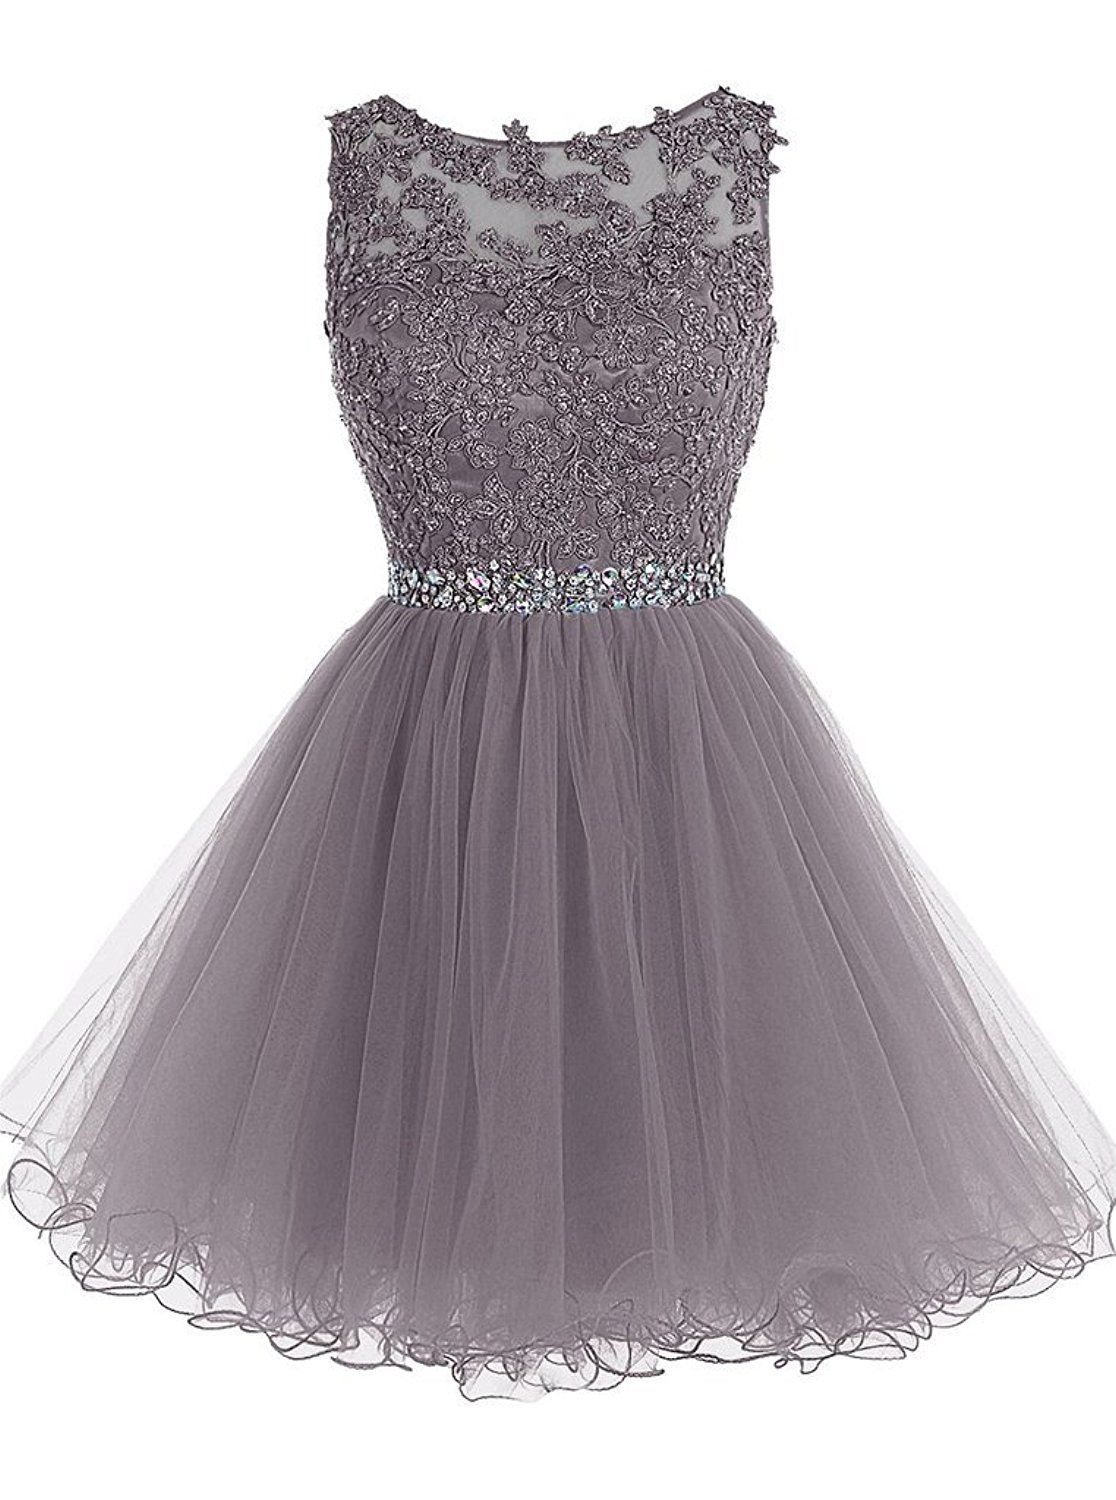 Gotidy appliques beading short homecoming bridesmaid dress for